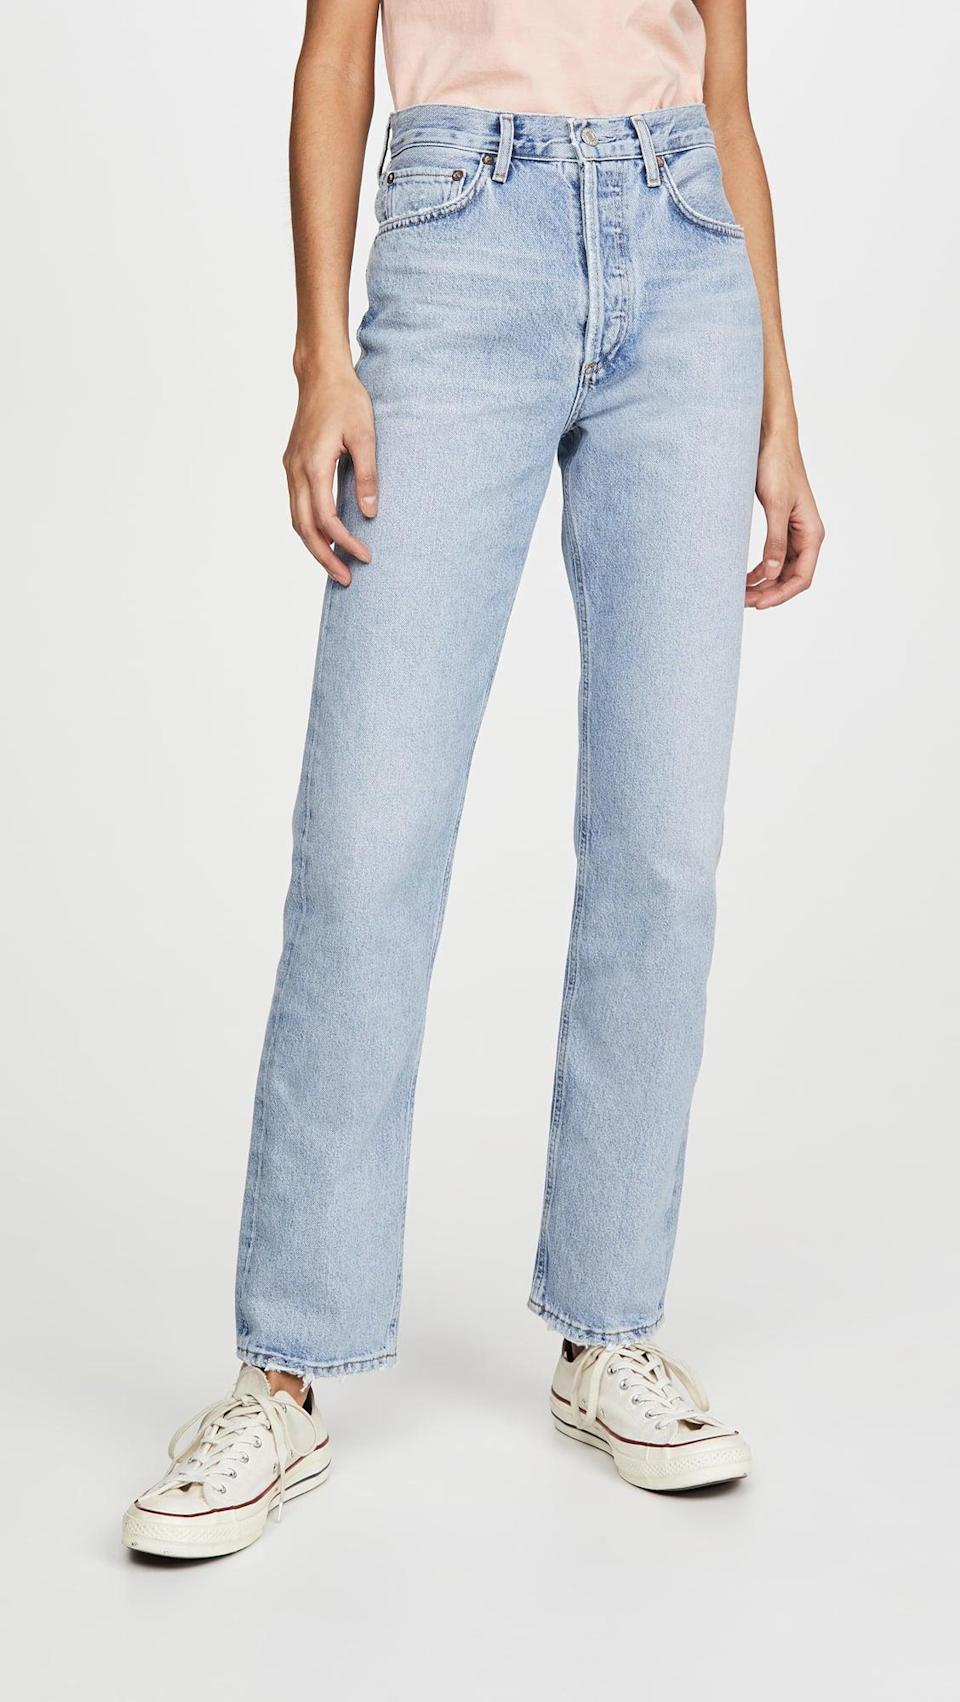 <p>If you're seeing the low-rise jean trend and aren't quite ready to hop on the bandwagon, try a mid-rise jean. These <span>Agolde Lana Mid Rise Vintage Straight Jeans</span> ($188) are so on trend.</p>